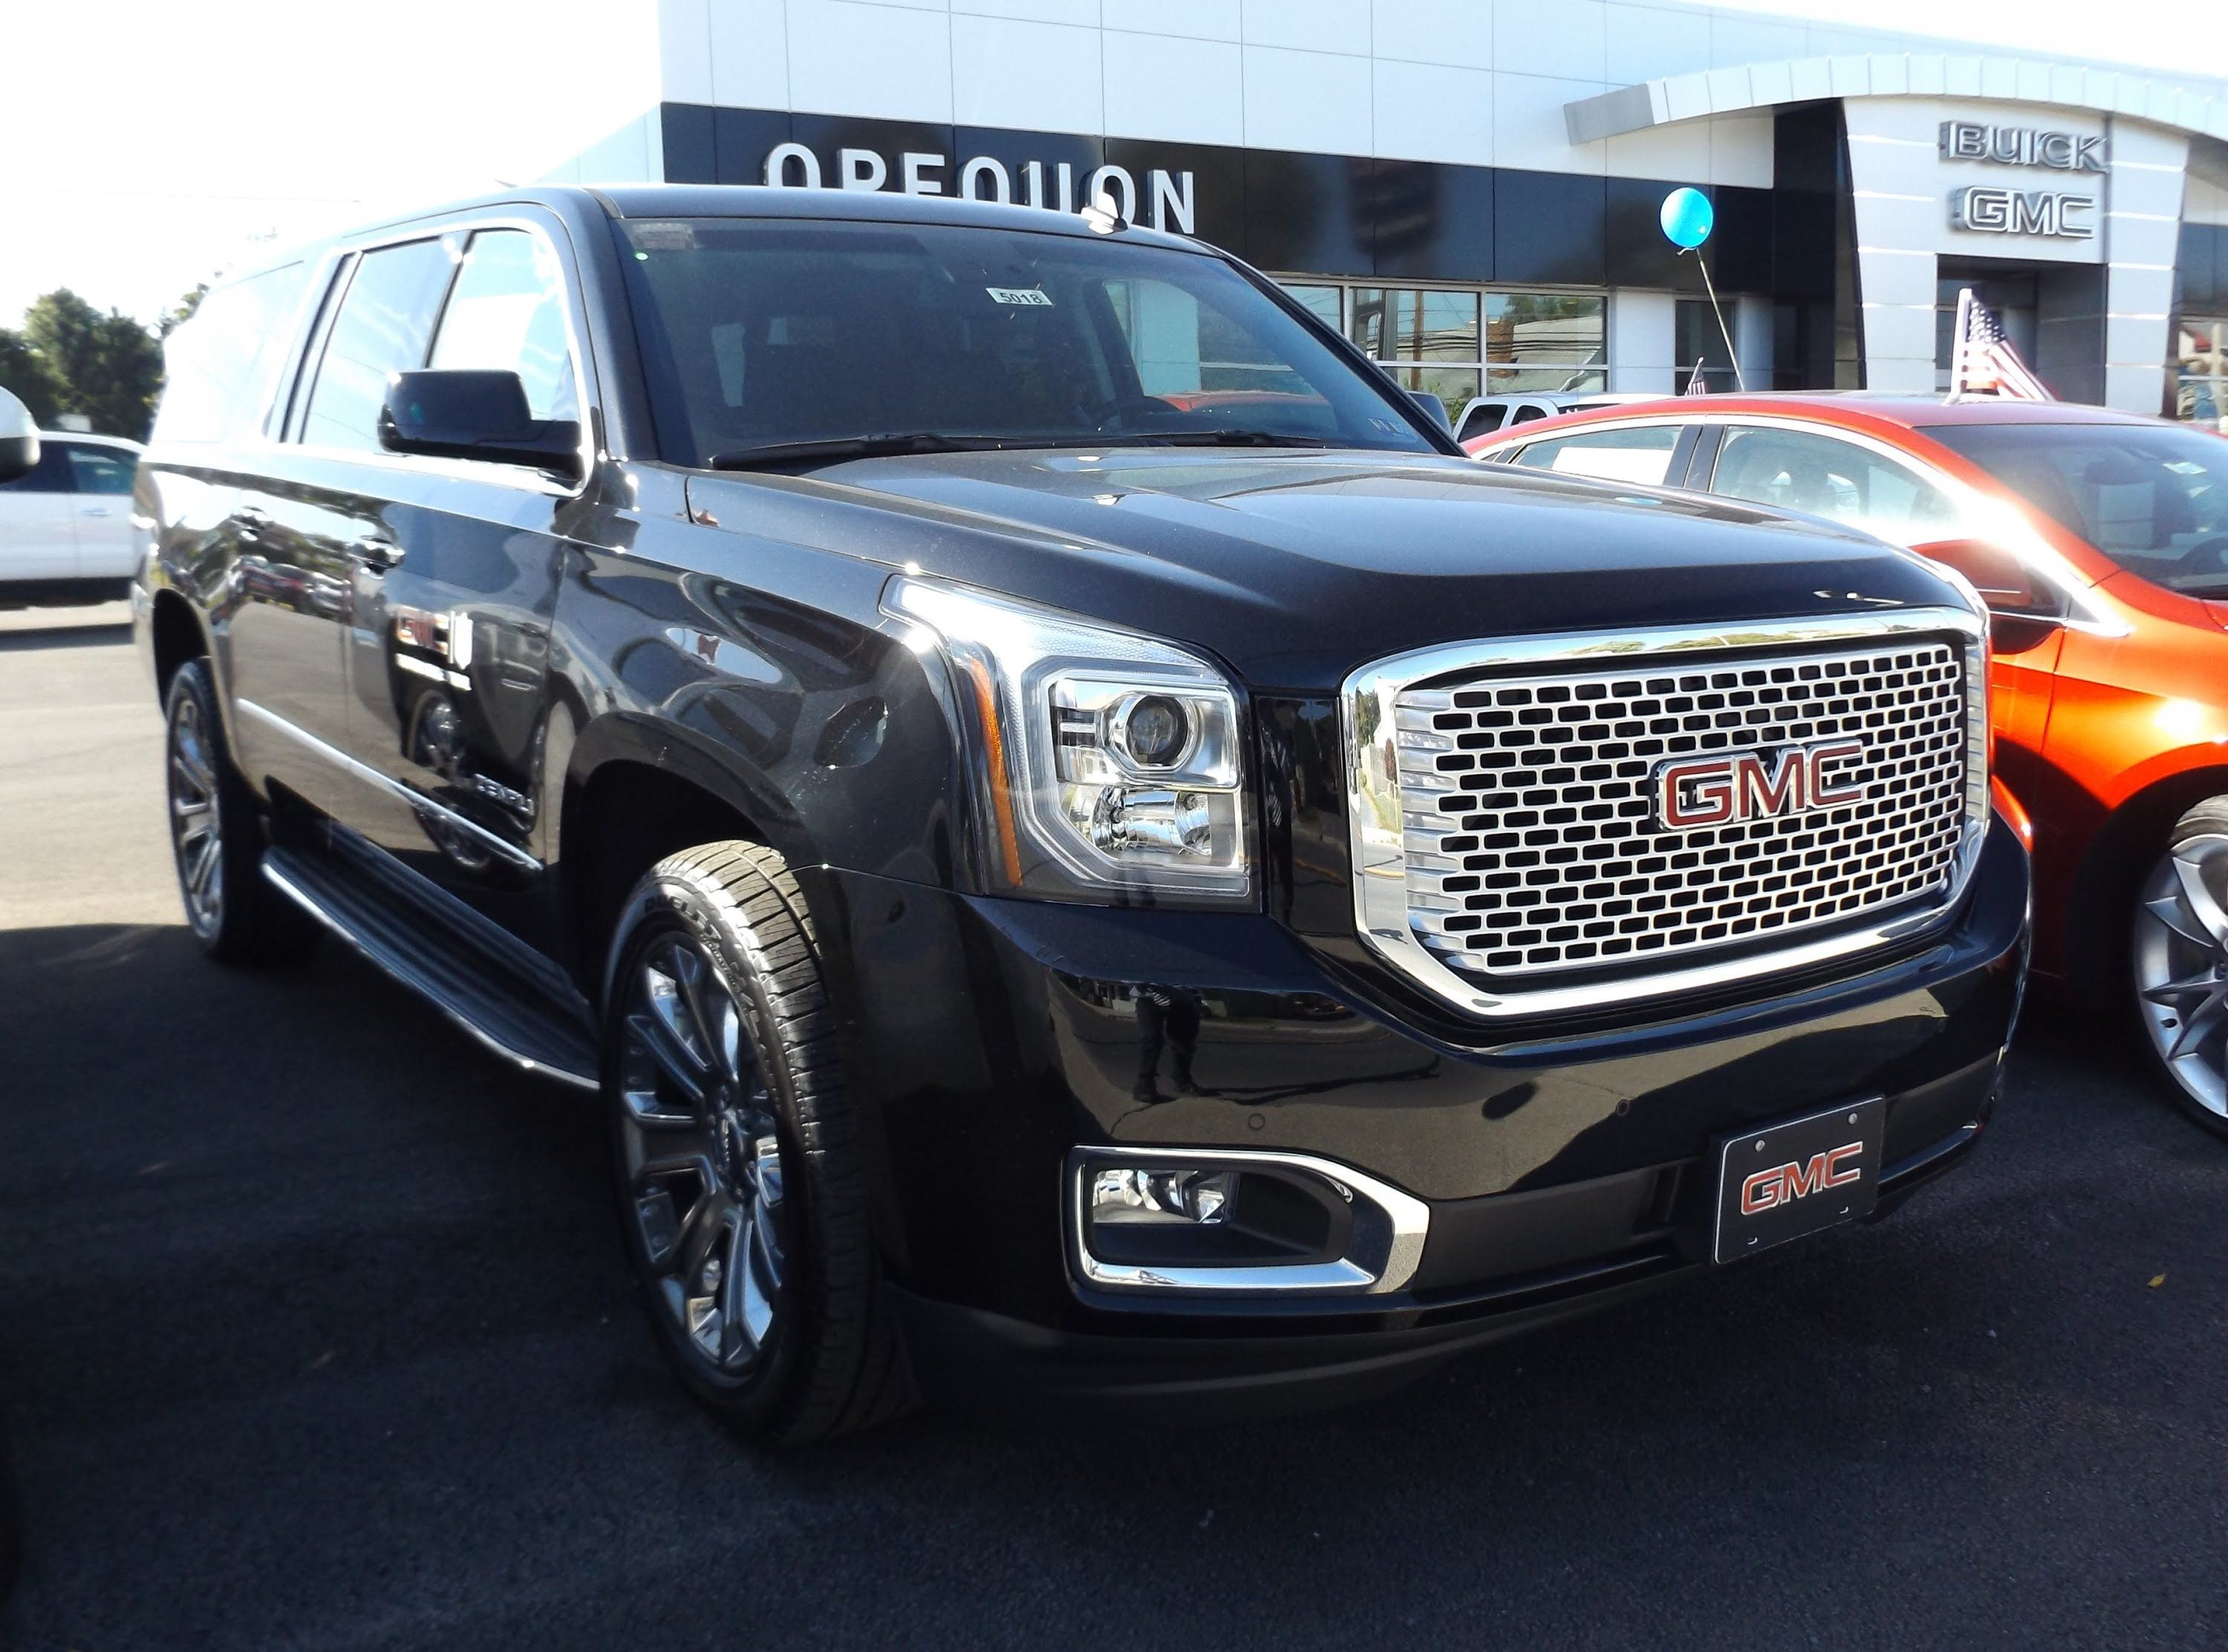 2015 Gmc Yukon Xl Denali 6 2l V8 Start Up Tour And Review Gmc